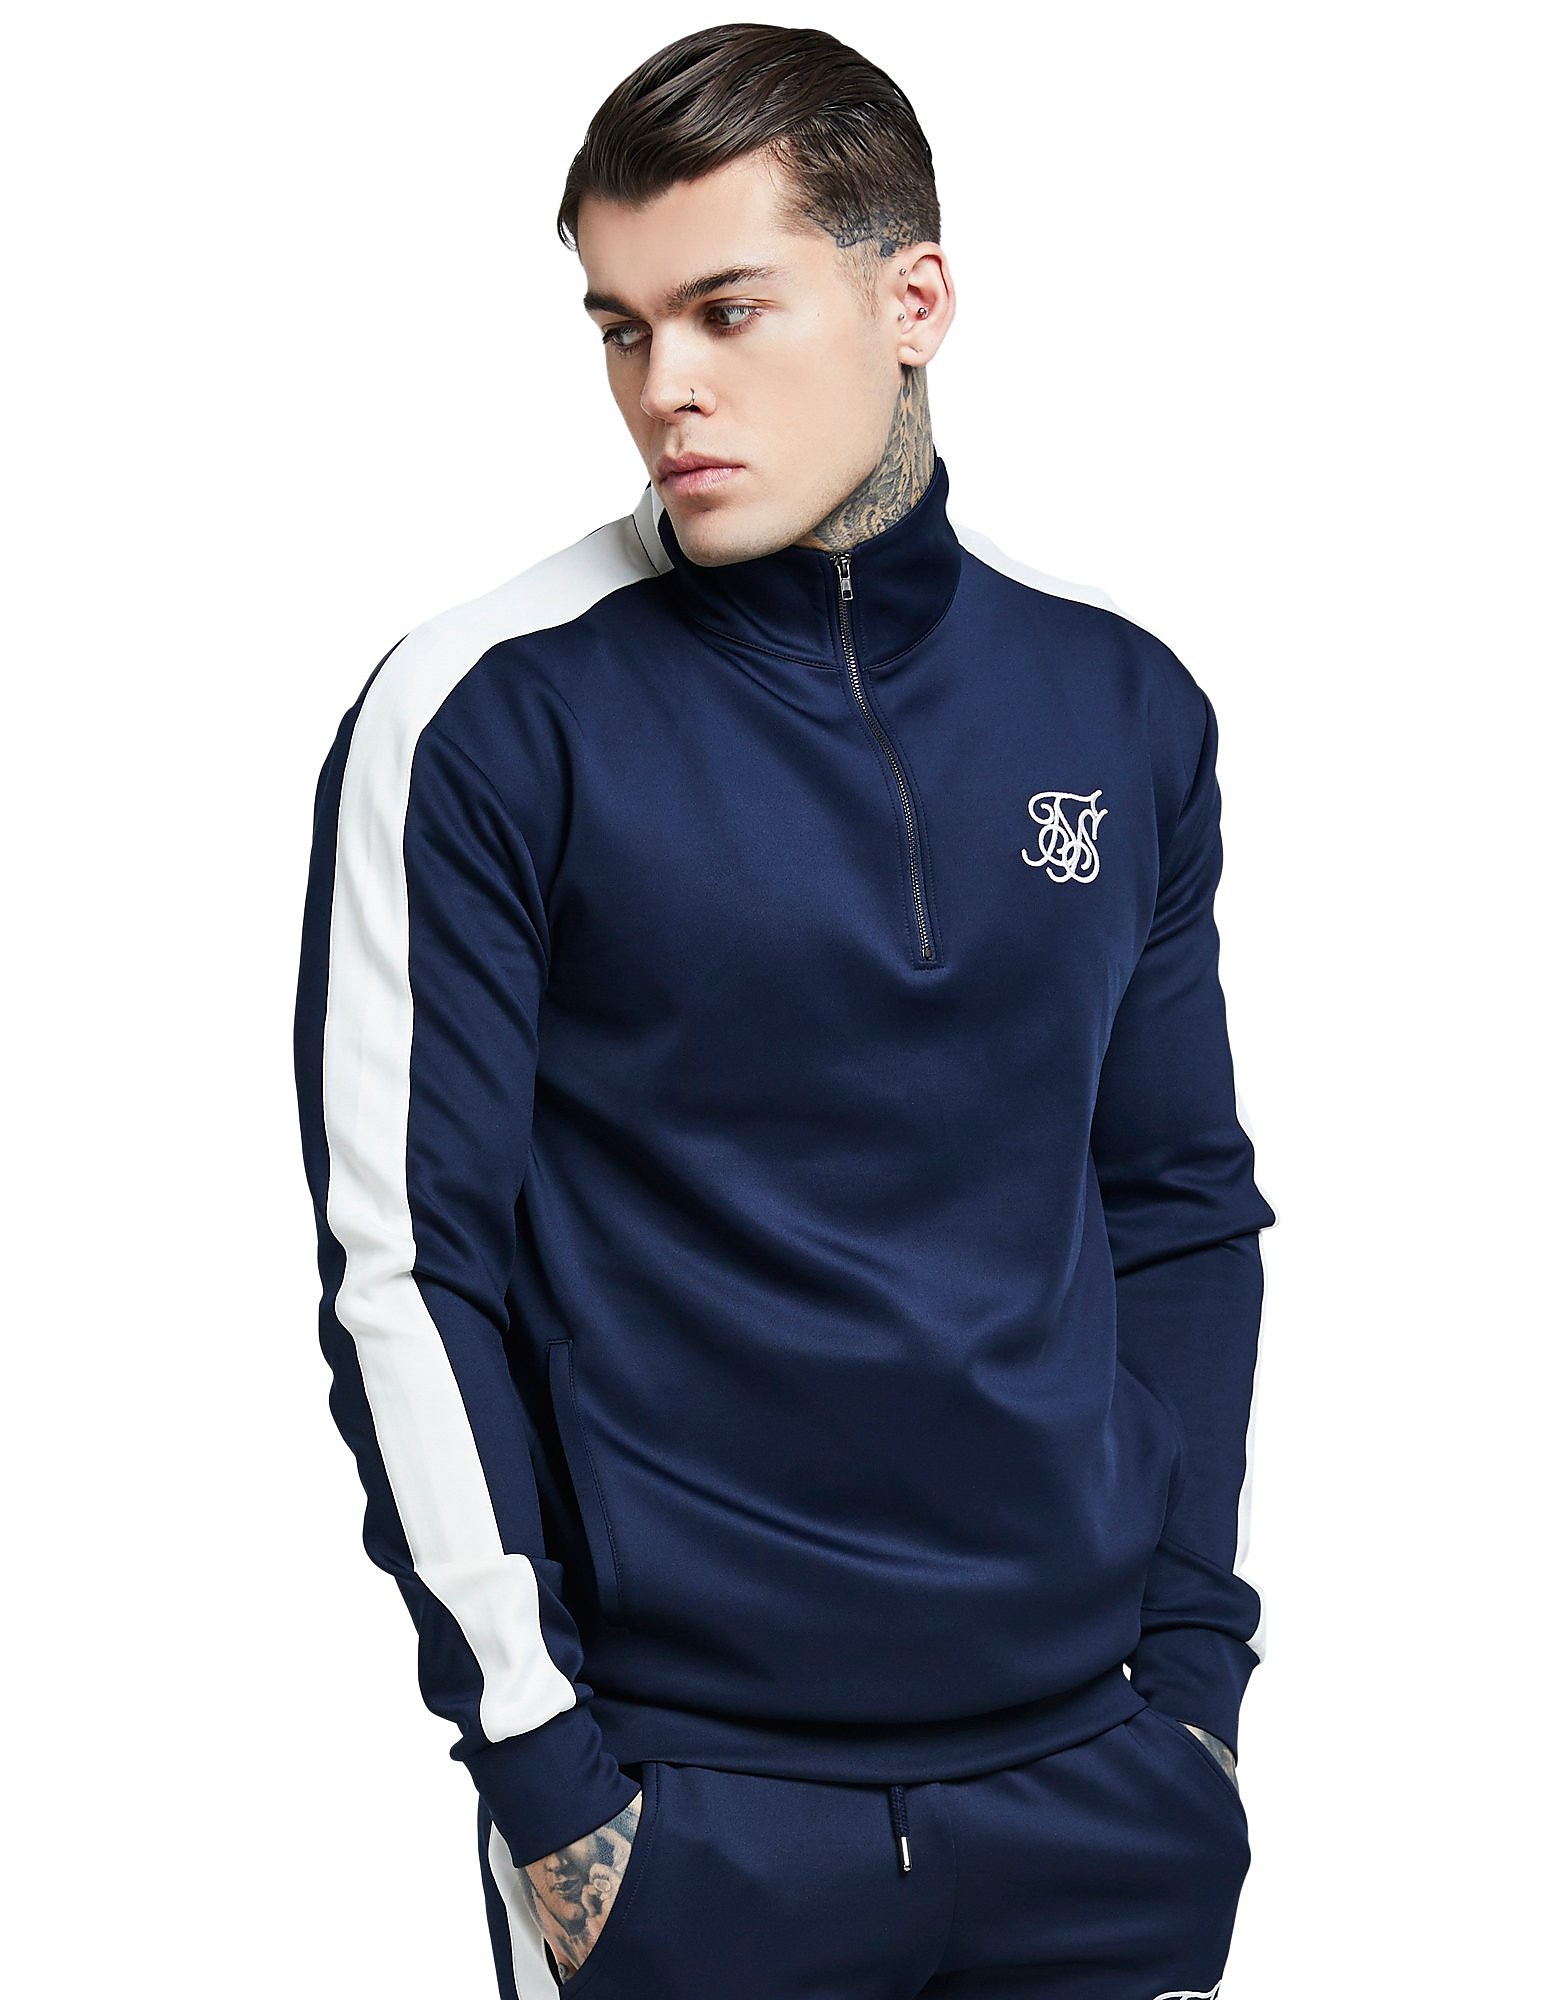 SikSilk 1/4 Zip Athlete Track Top